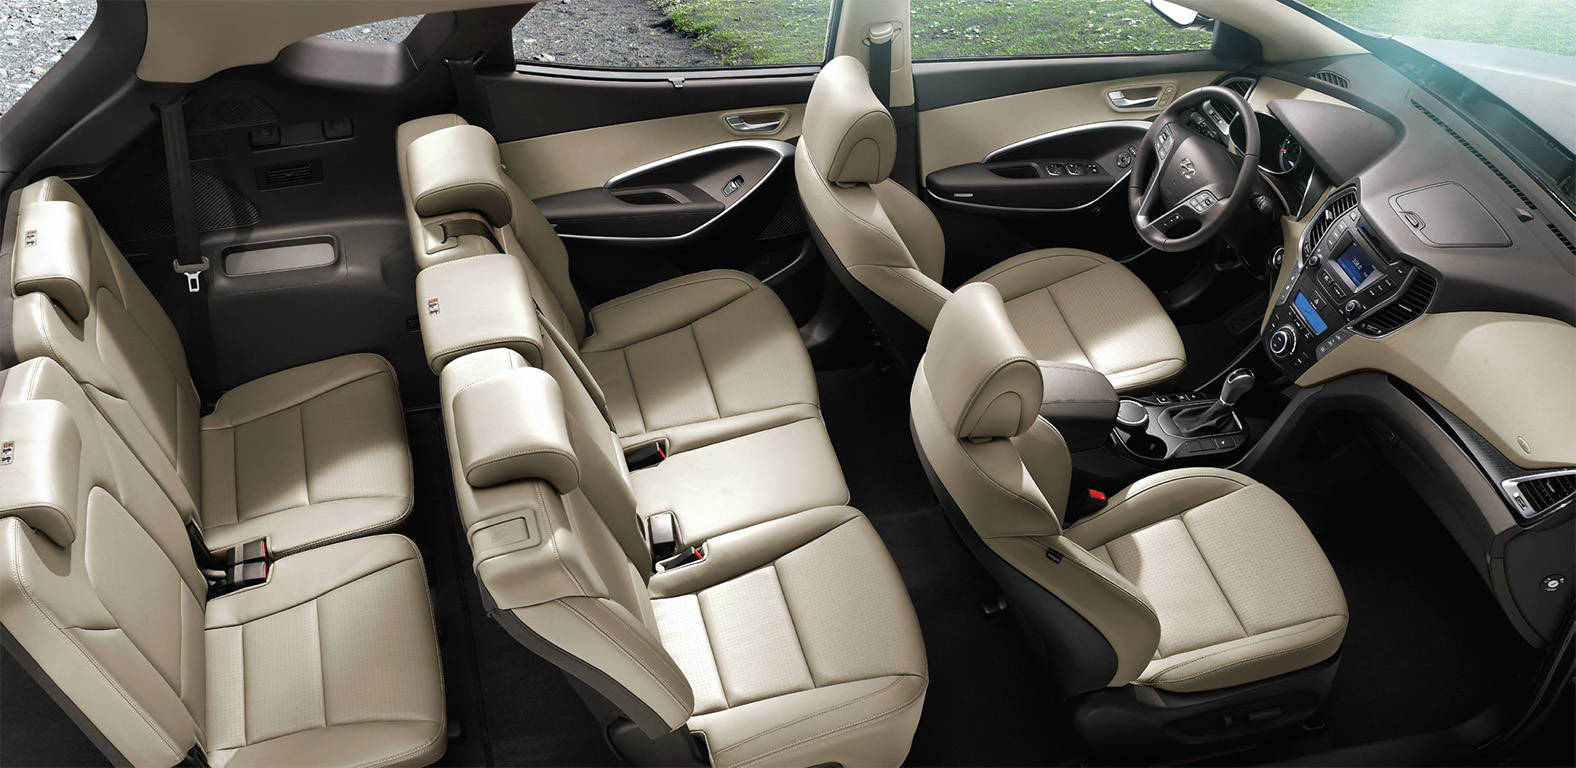 The 2013 Hyundai Santa Fe Sport Entered The Top 10 Best Interiors